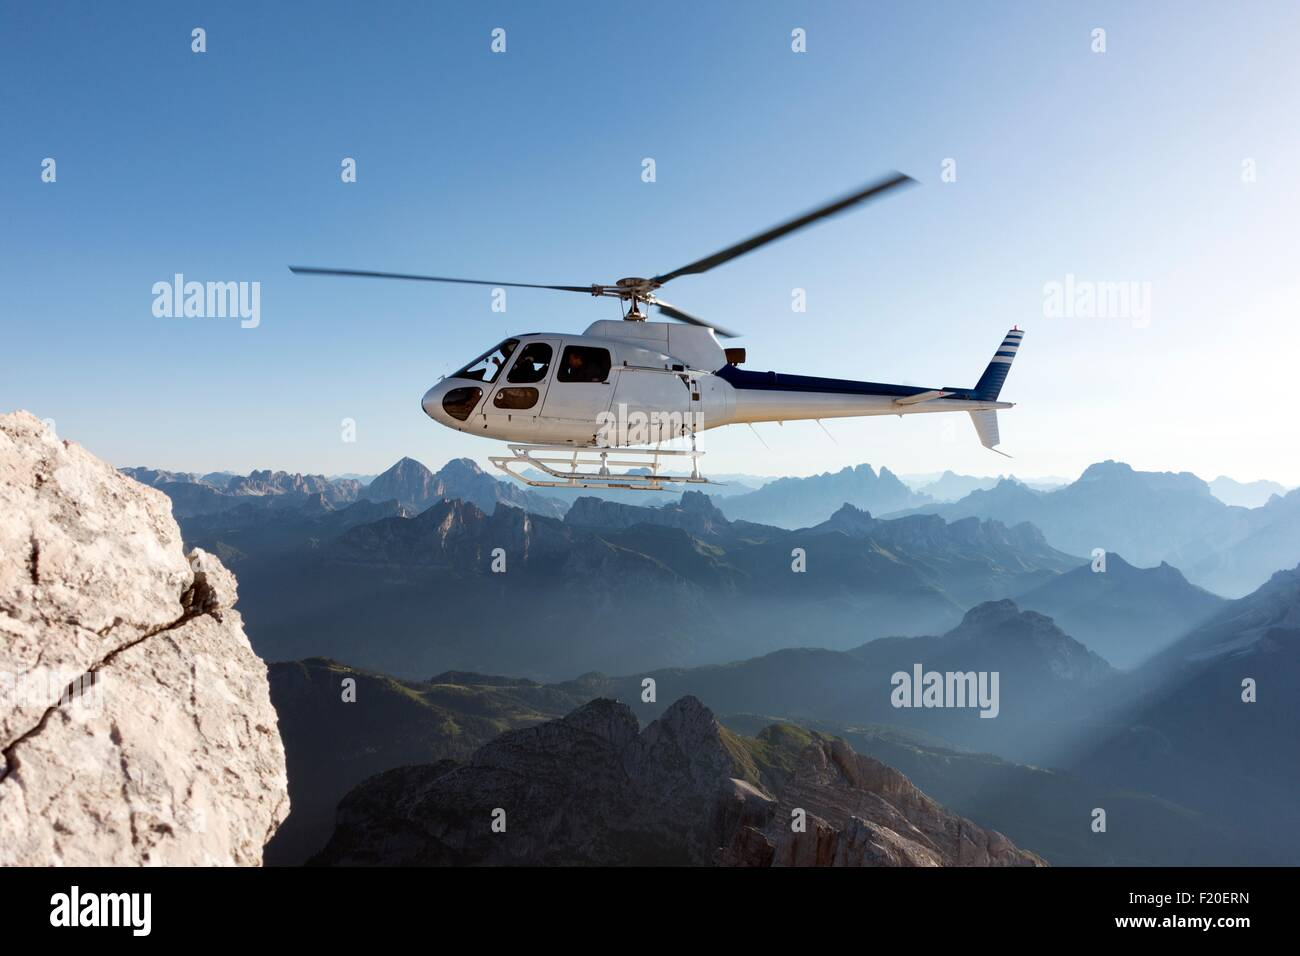 Helicopter transporting BASE jumpers to summit, Dolomites, Italy - Stock Image